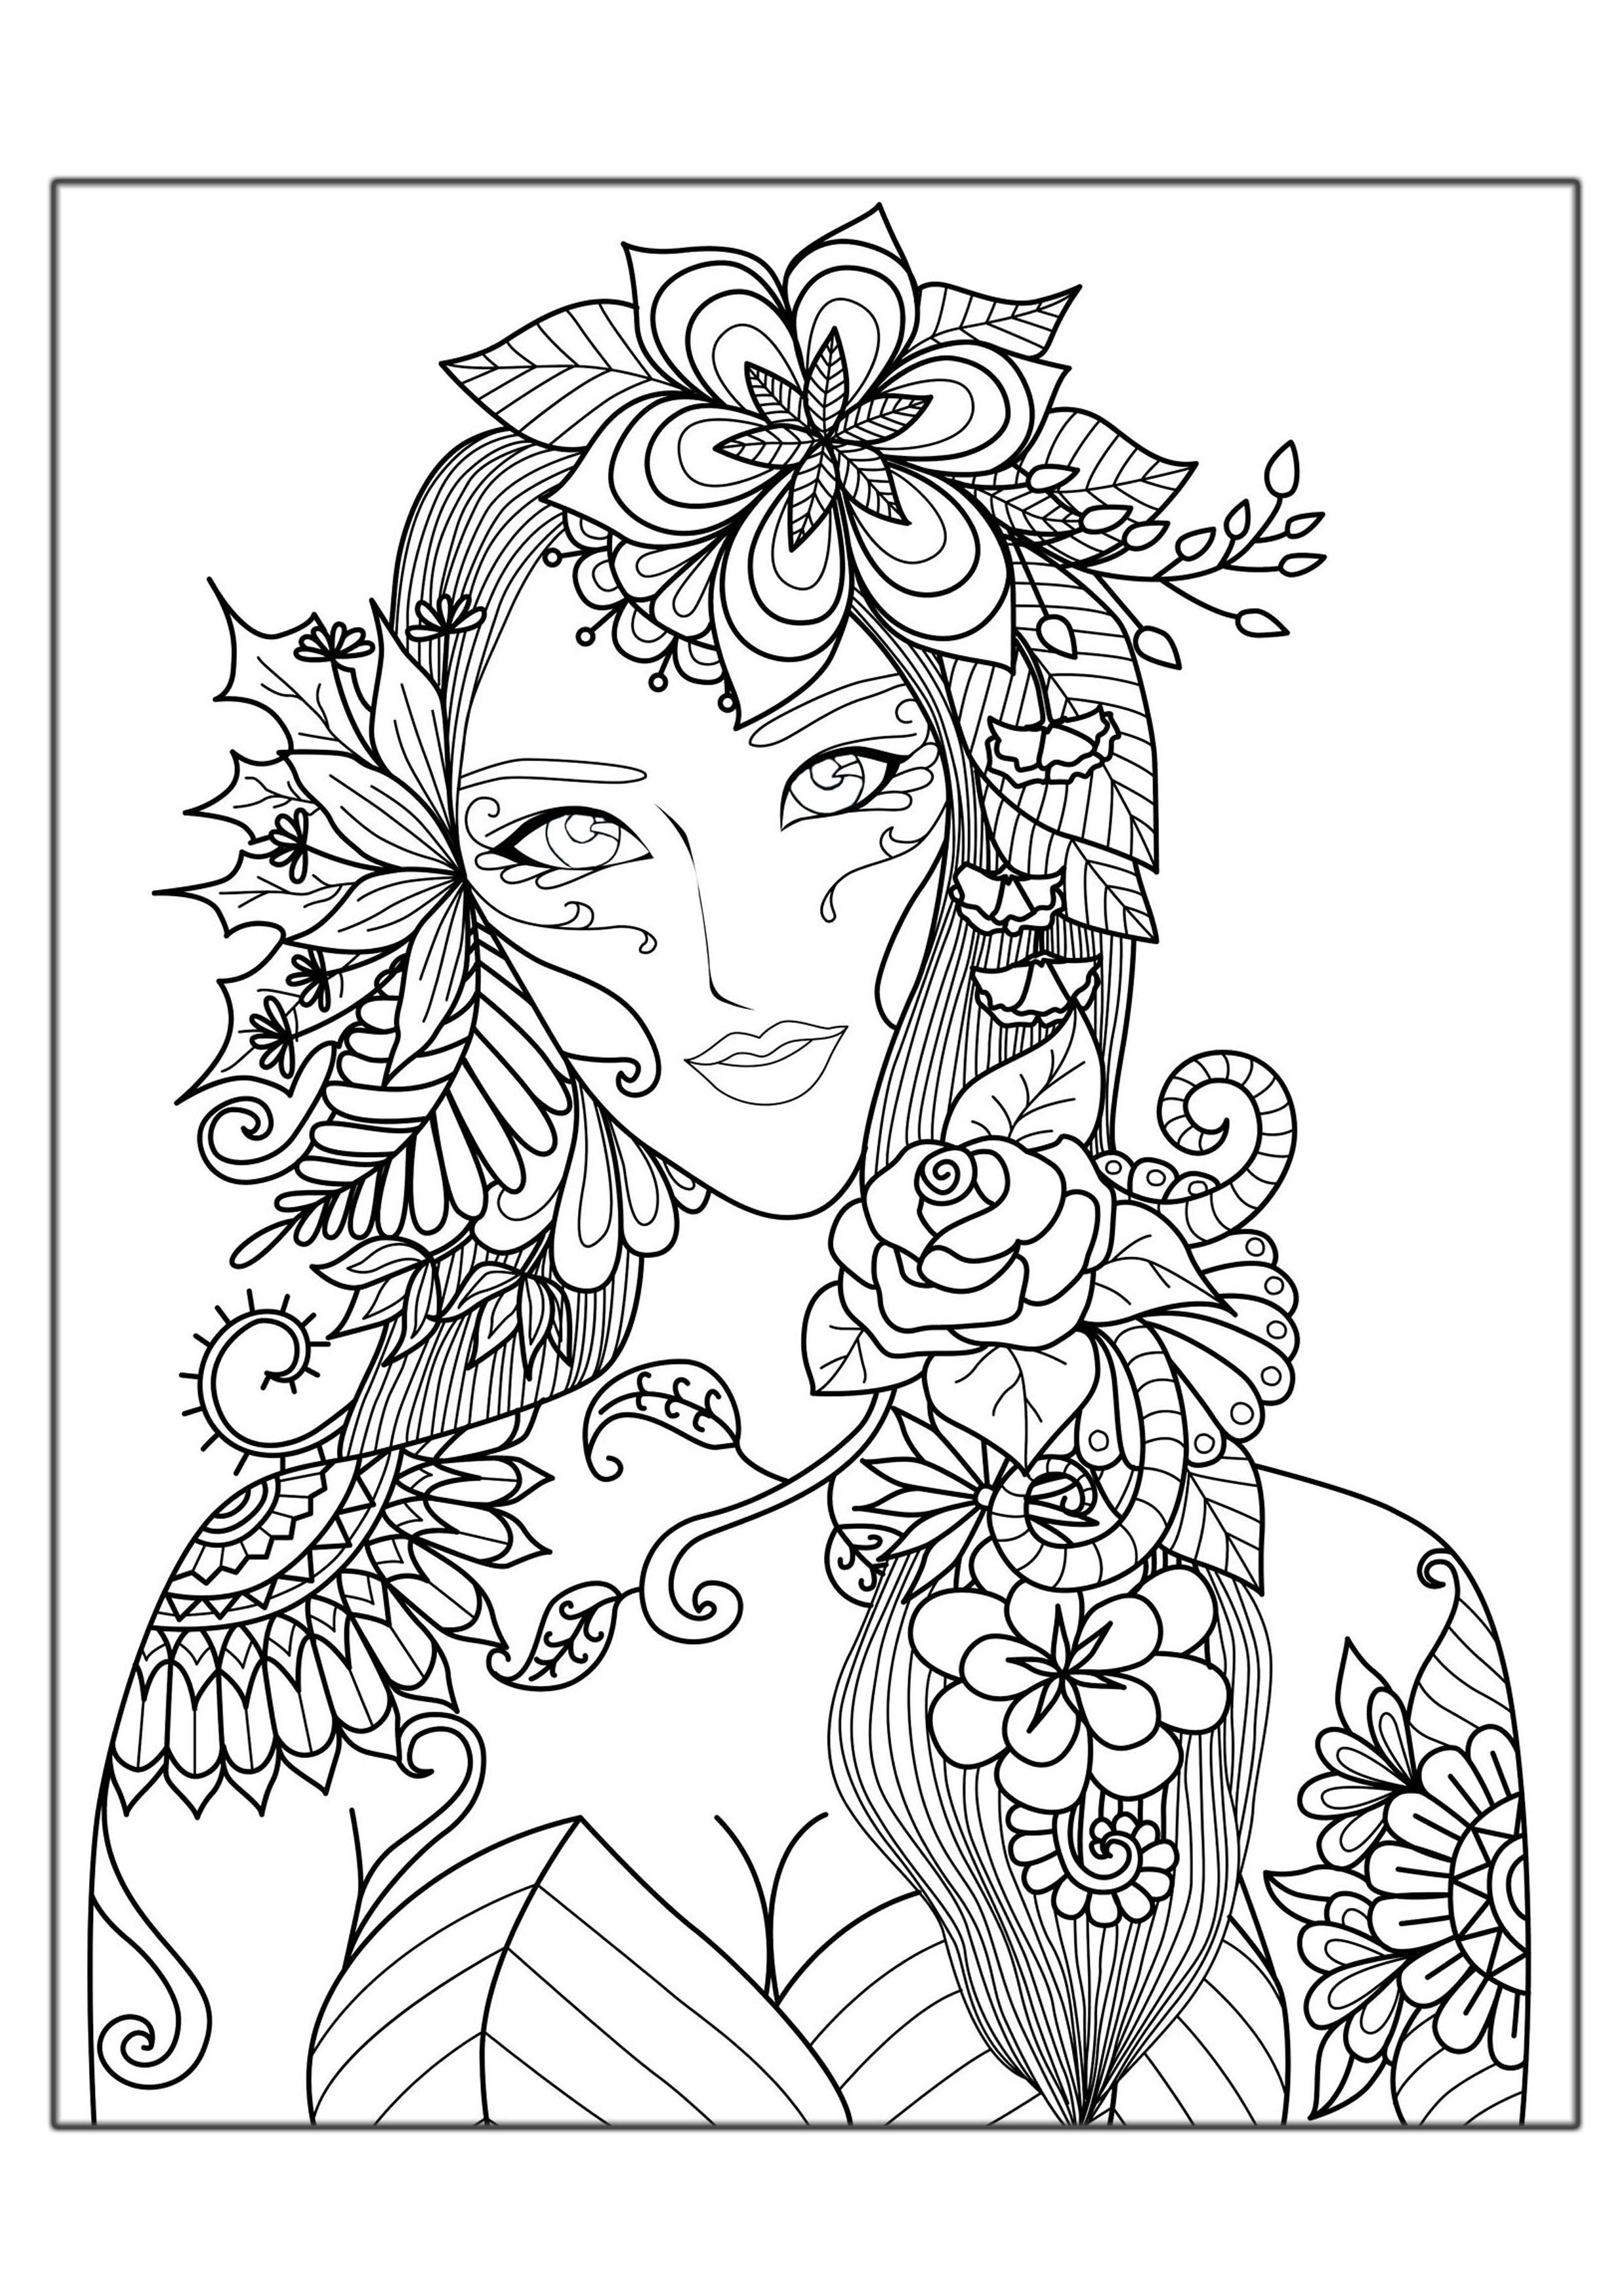 hard drawings to color hard coloring pages for adults best coloring pages for kids drawings color hard to